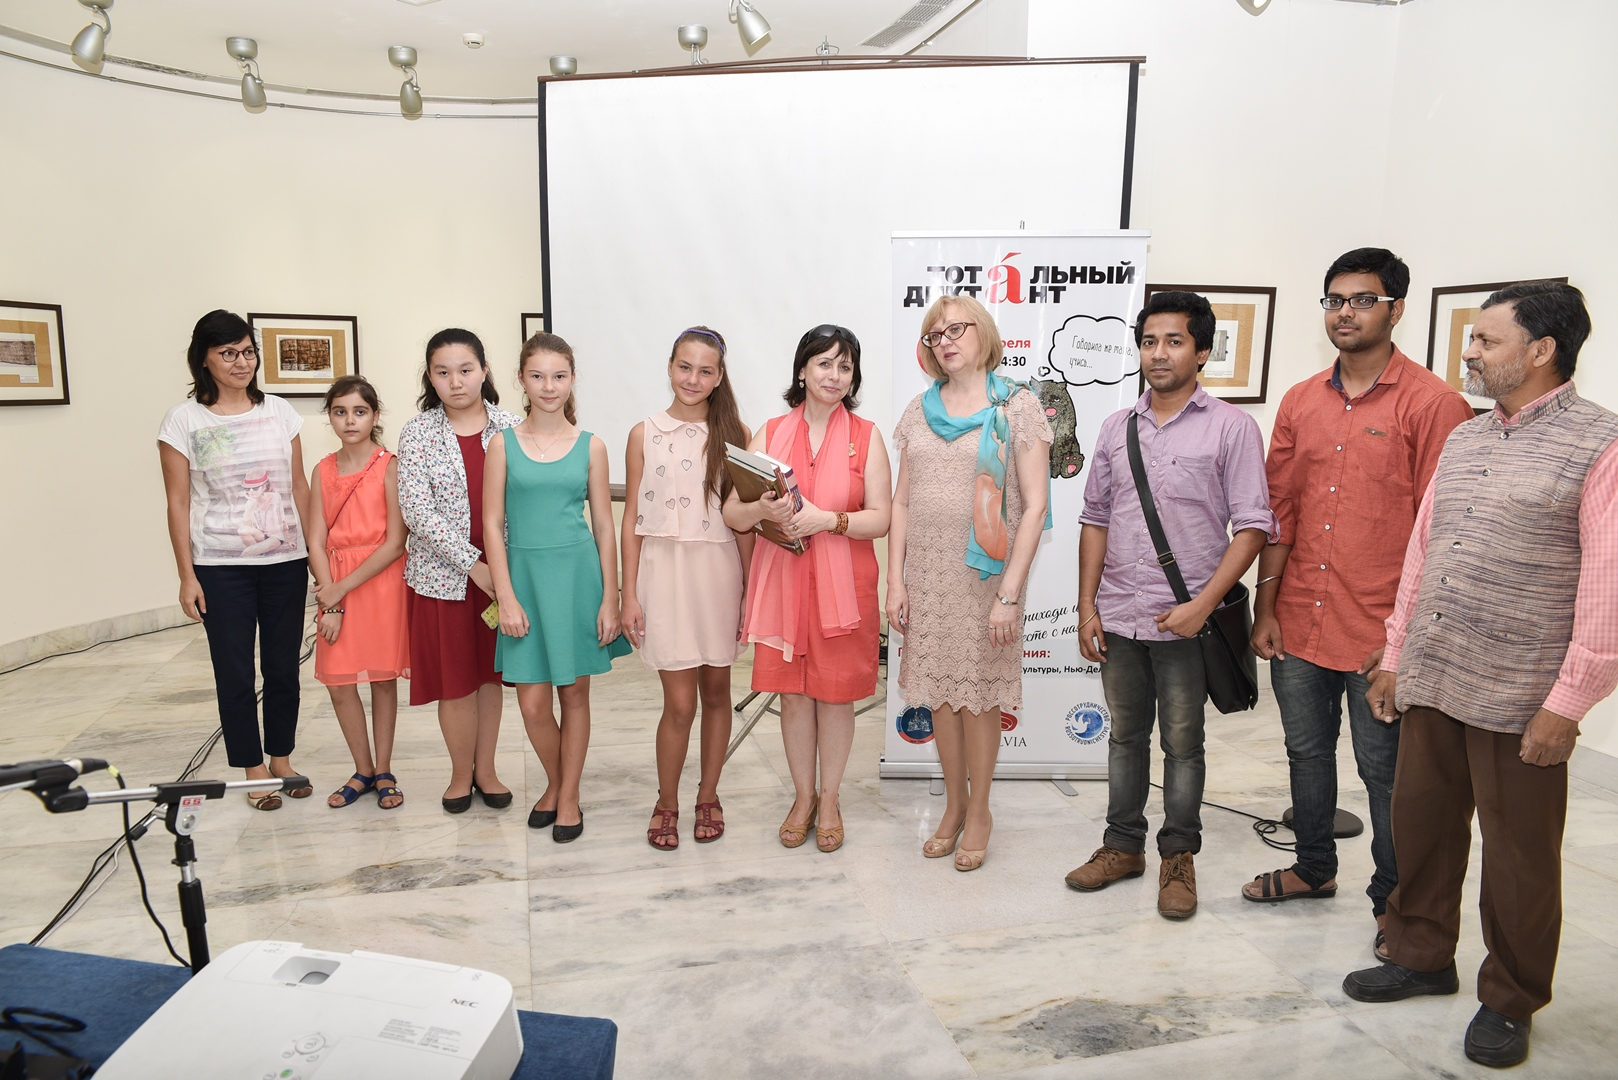 A fair number of Russian language students, students of the Russian Embassy School, Russian compatriots, and others attended the function.